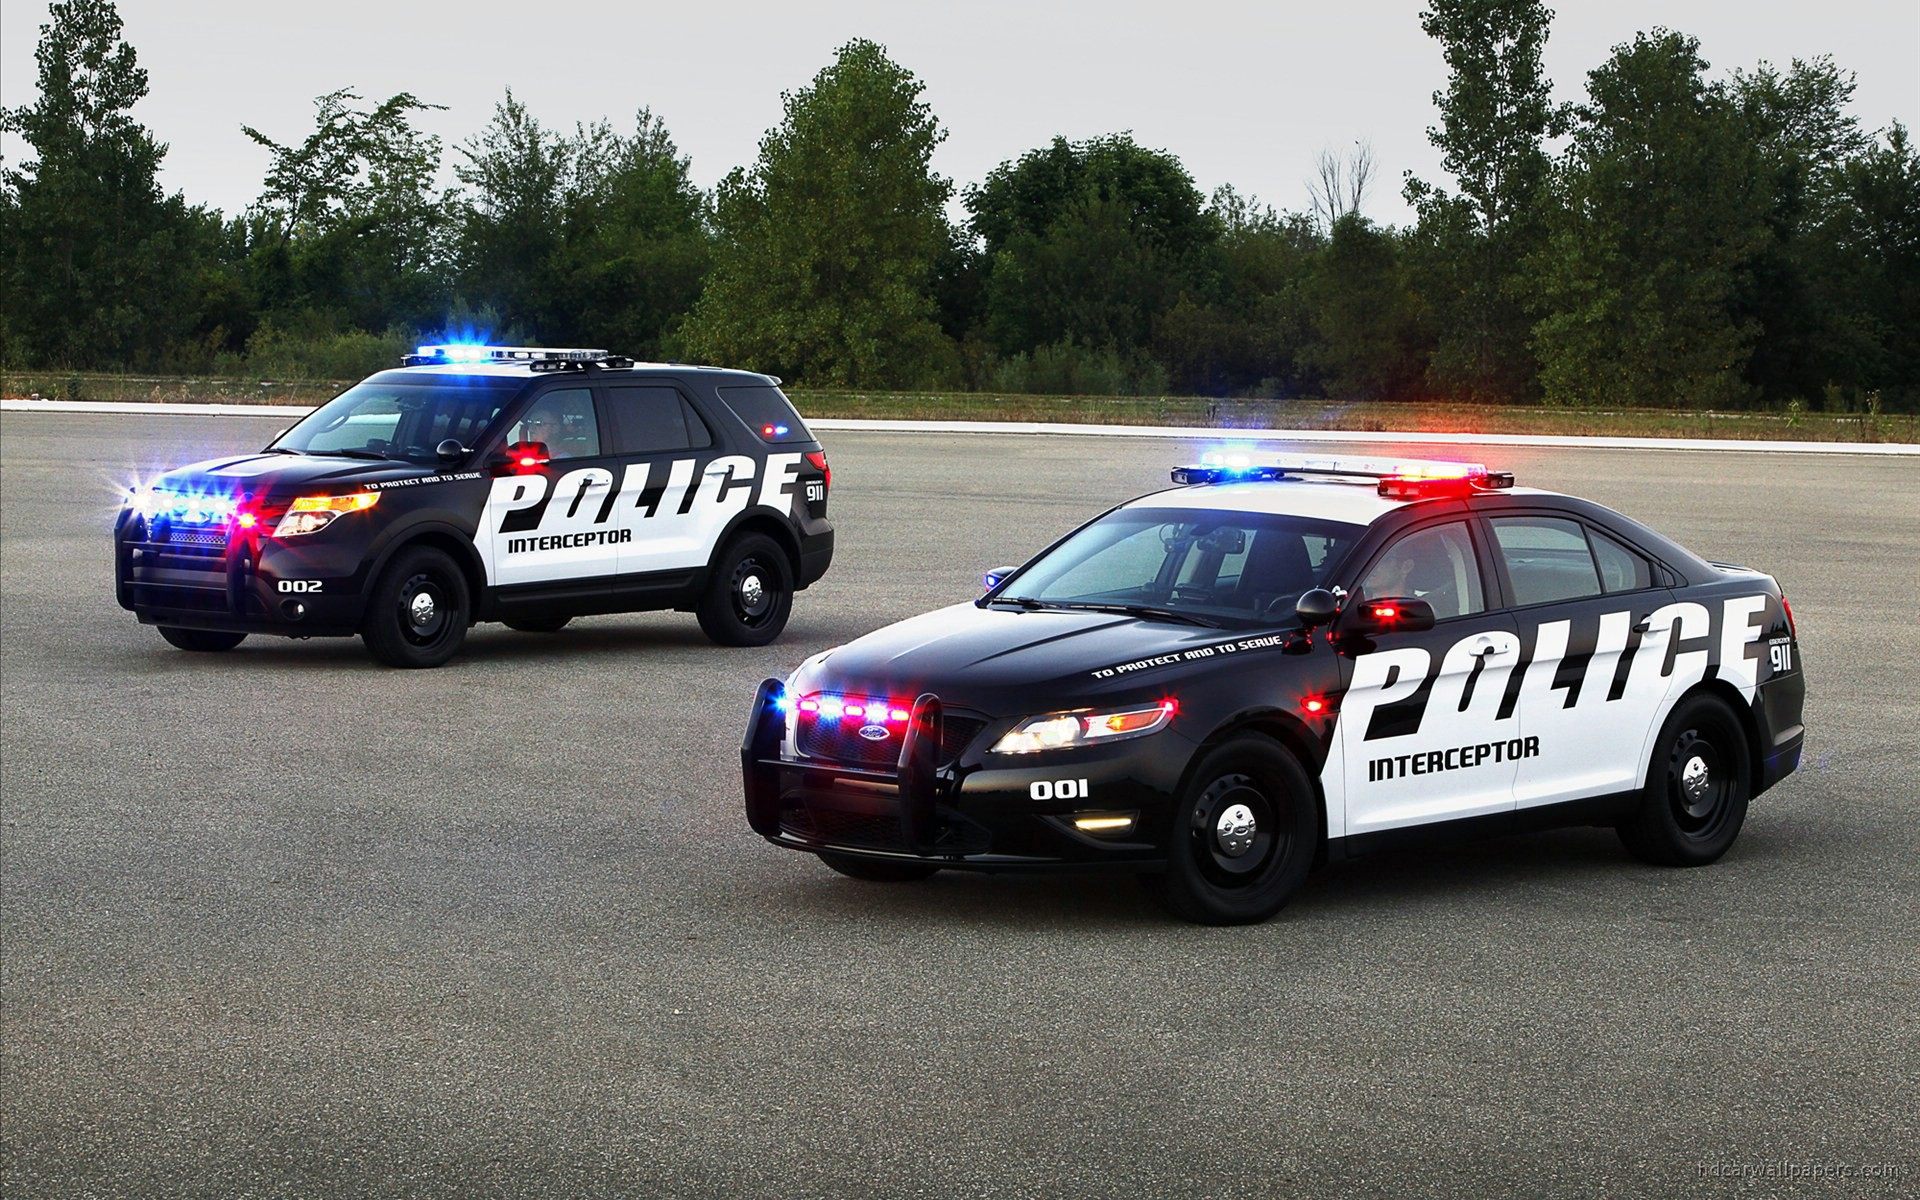 2011 Ford Police Interceptor SUV 2 Wallpaper HD Car Wallpapers 1920x1200